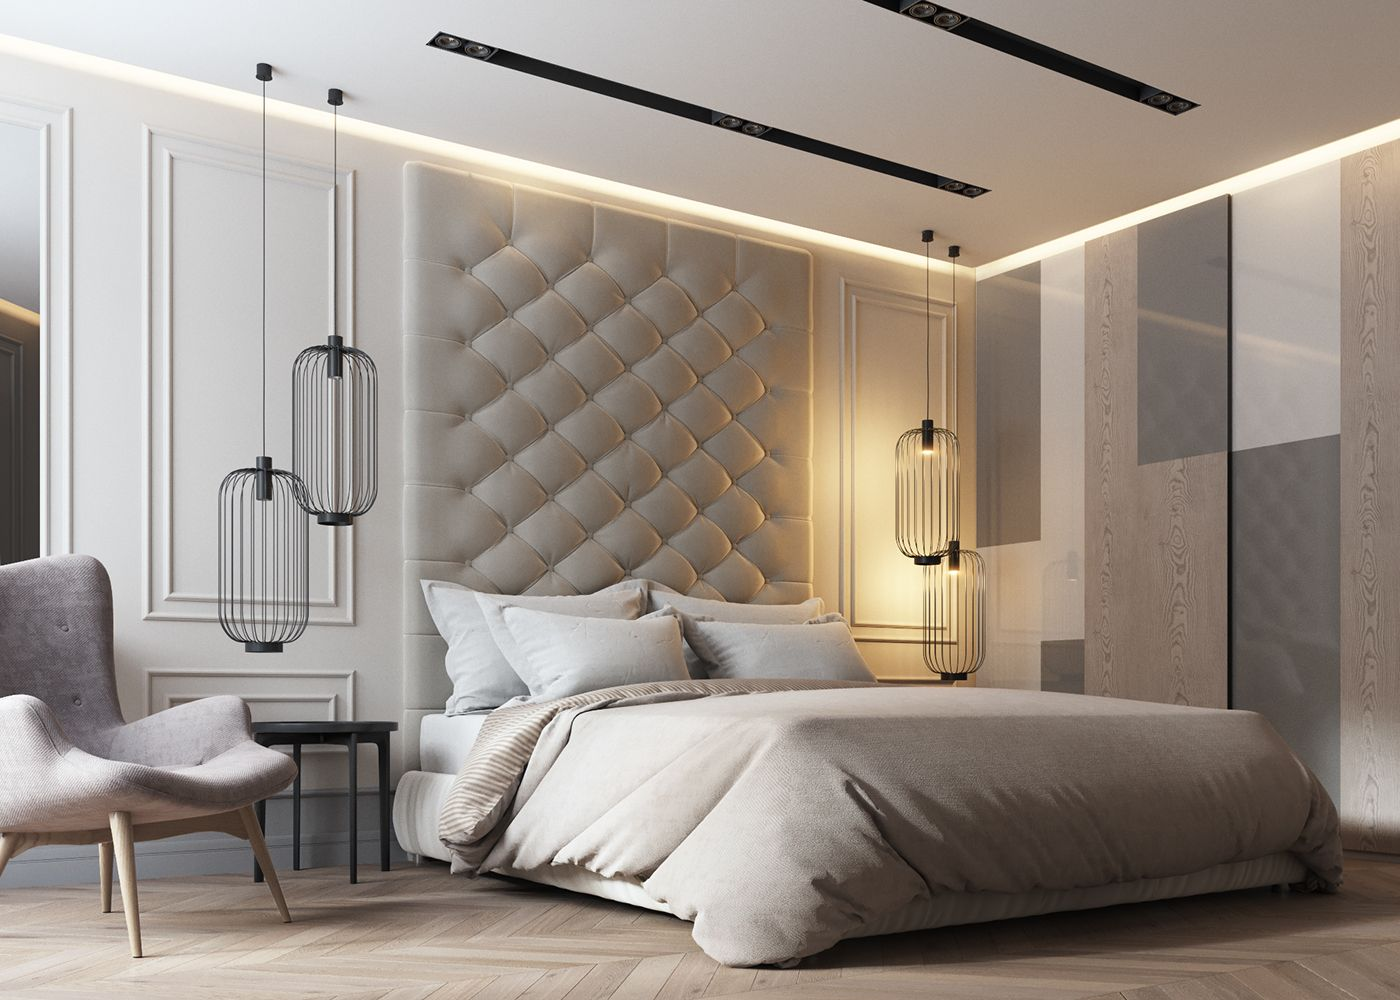 best  contemporary bedroom designs ideas on pinterest  - apartments in ukrainedesign dede interior studiovisualization maxtiabys max shpak (vizline studio contemporary bedroom